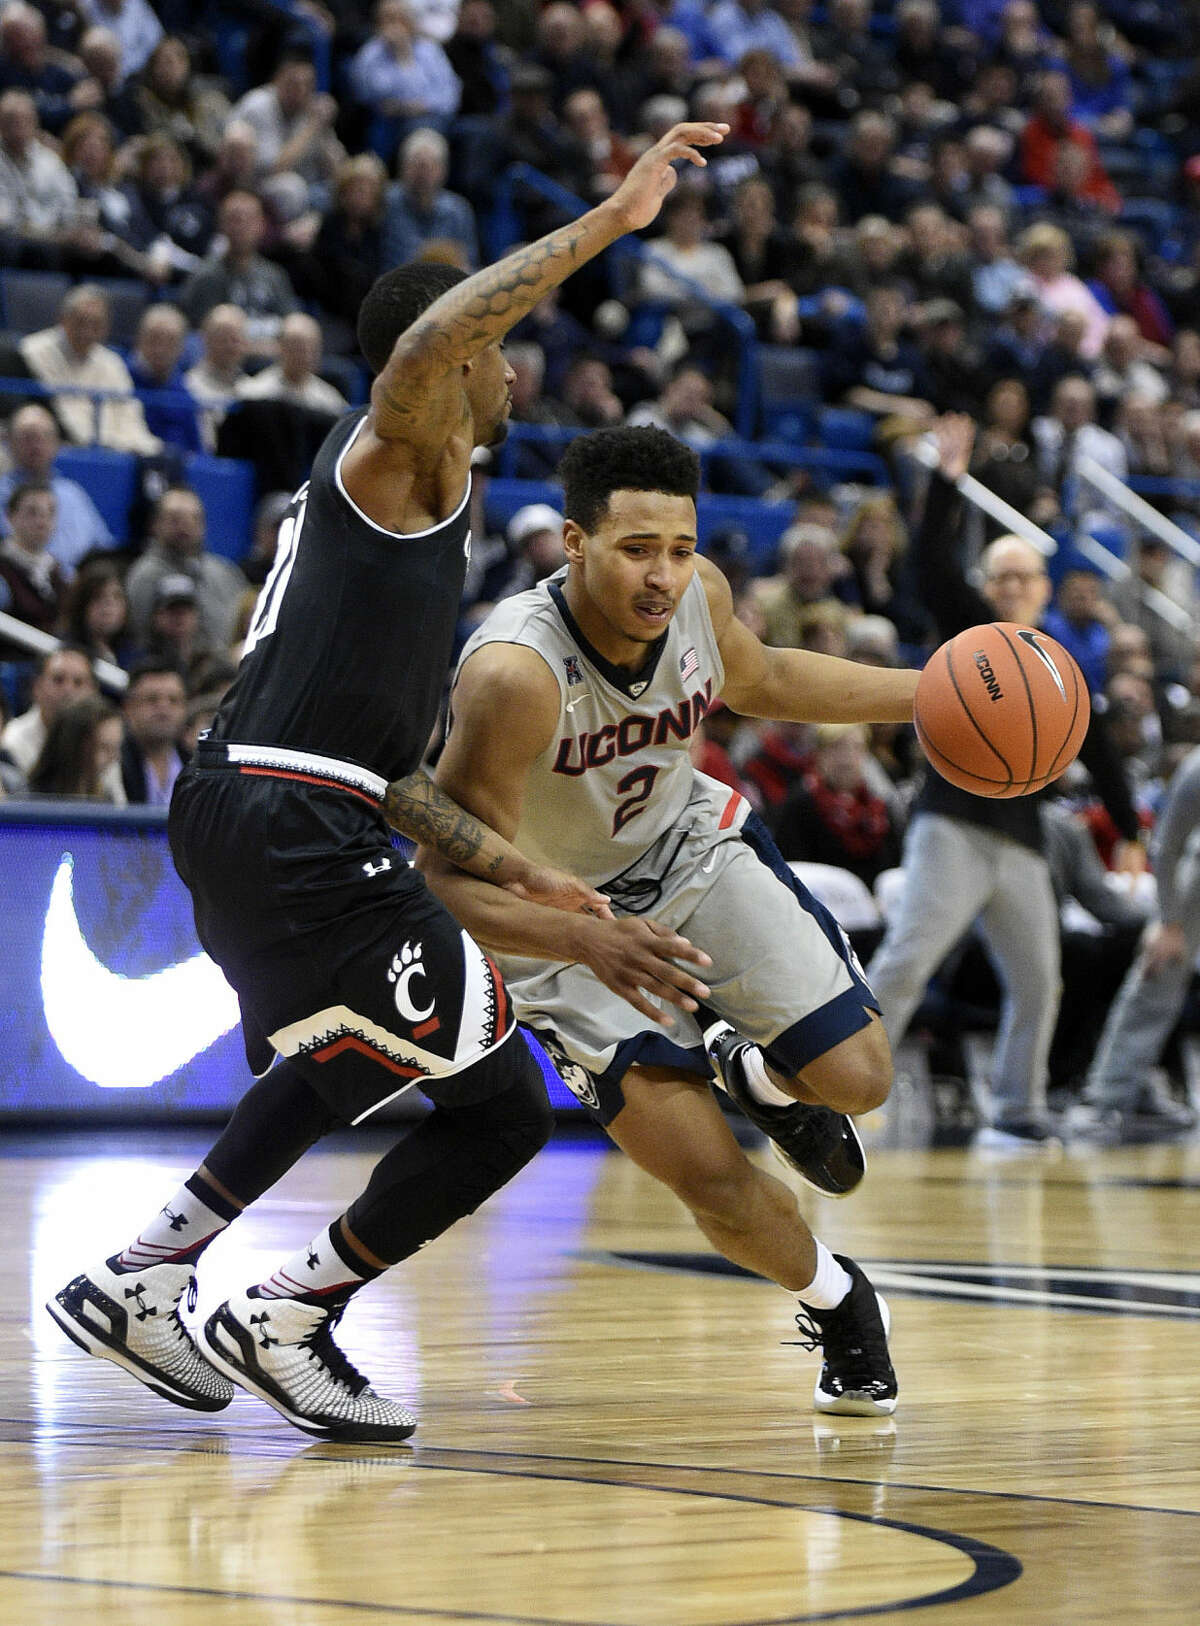 Connecticut's Jalen Adams (2) during the first half of an NCAA college basketball game in Hartford, Conn., on Thursday, Jan. 28, 2016. (AP Photo/Fred Beckham)